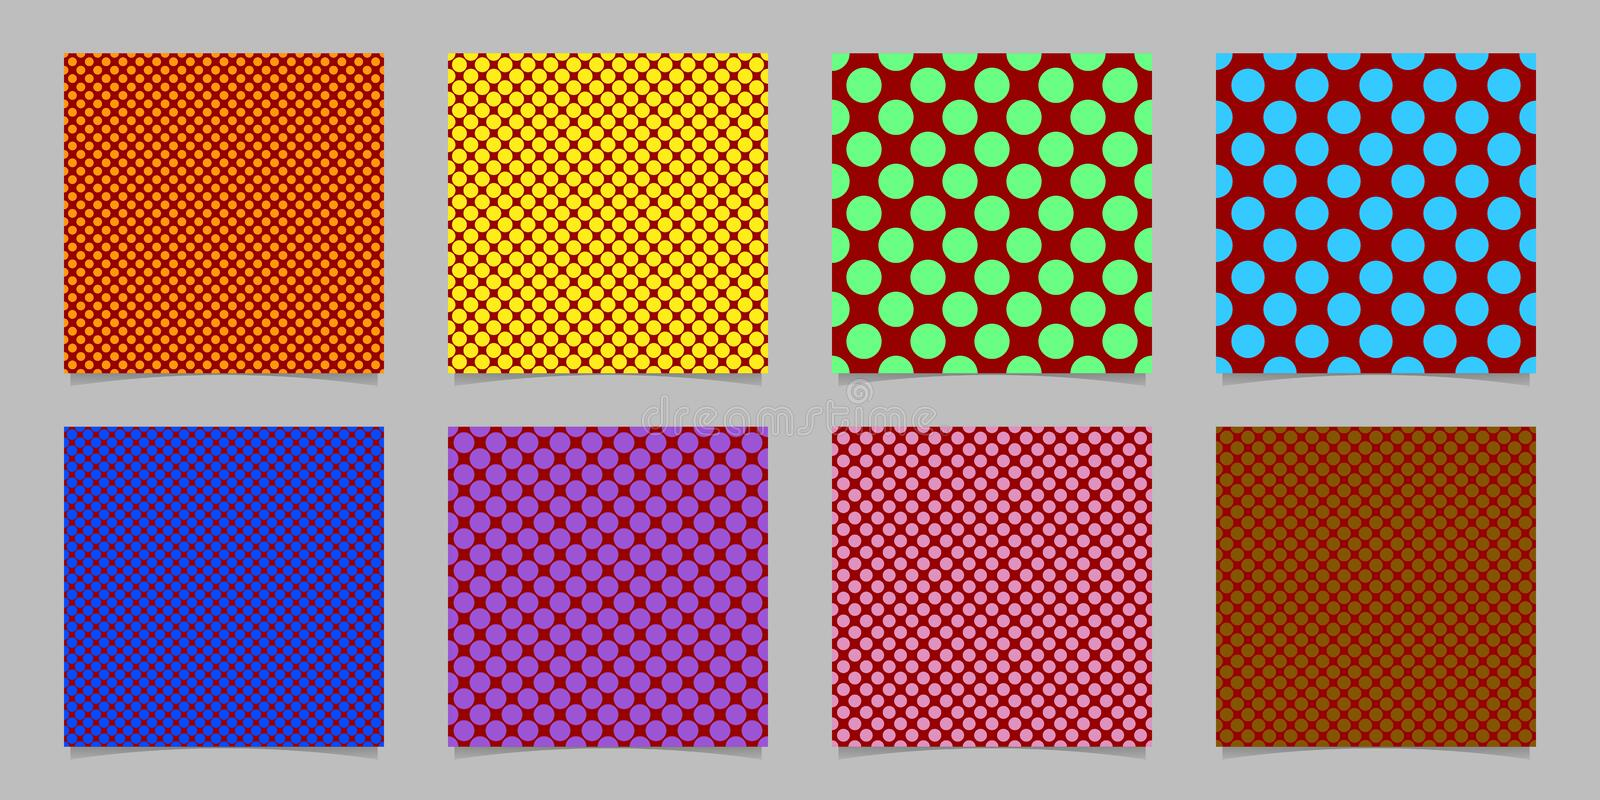 Retro abstract seamless polka dot background pattern template set - vector collection from colored circles royalty free illustration